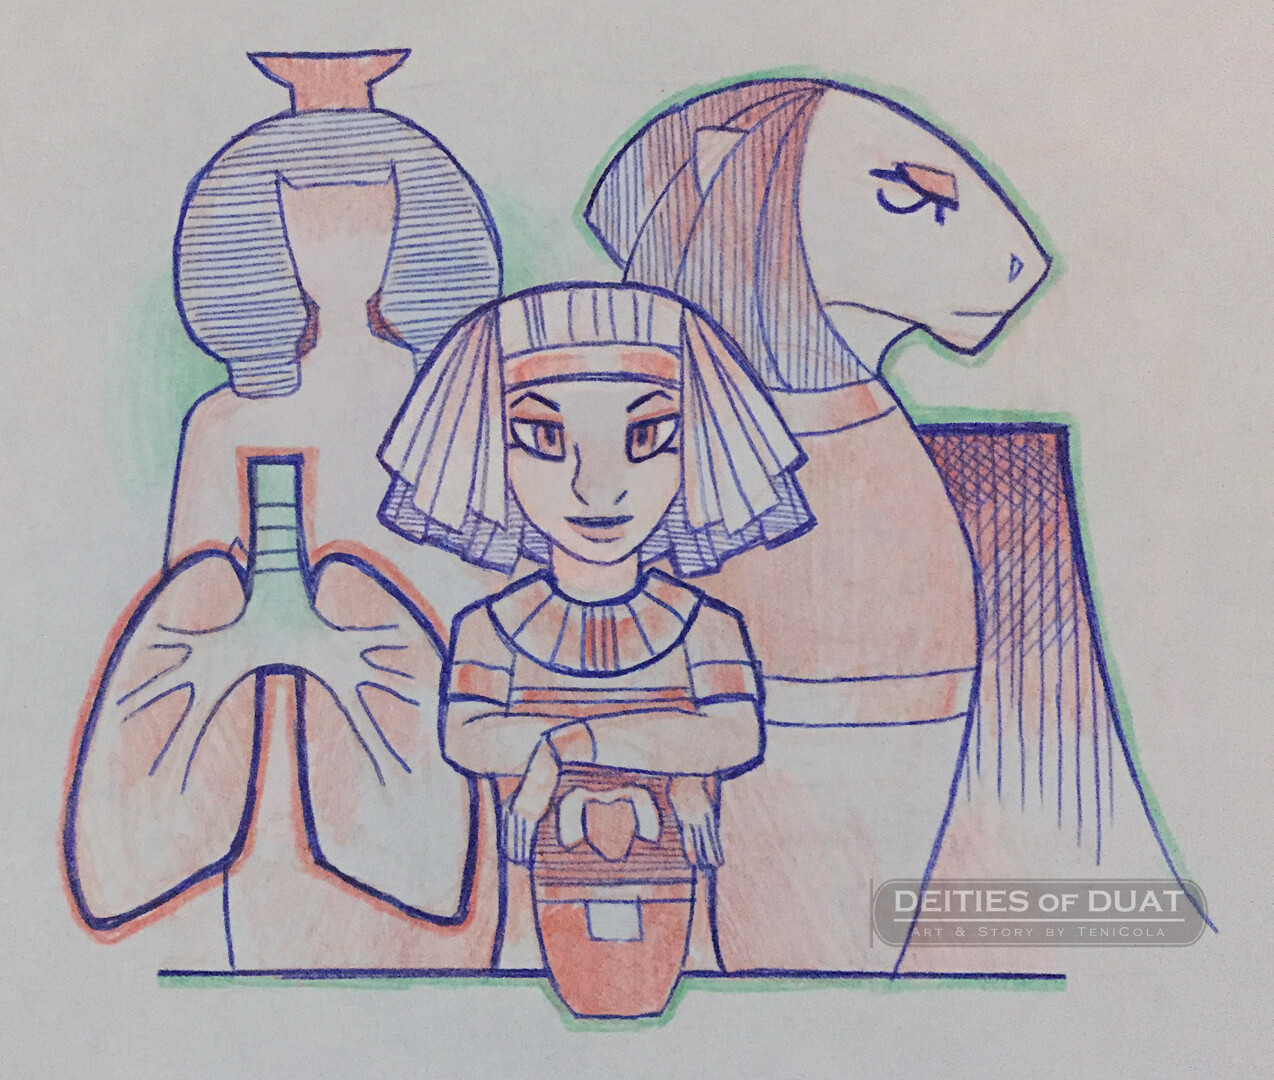 HAPY -- One of the Four Sons of Horus, who guards the lungs and represents the North.